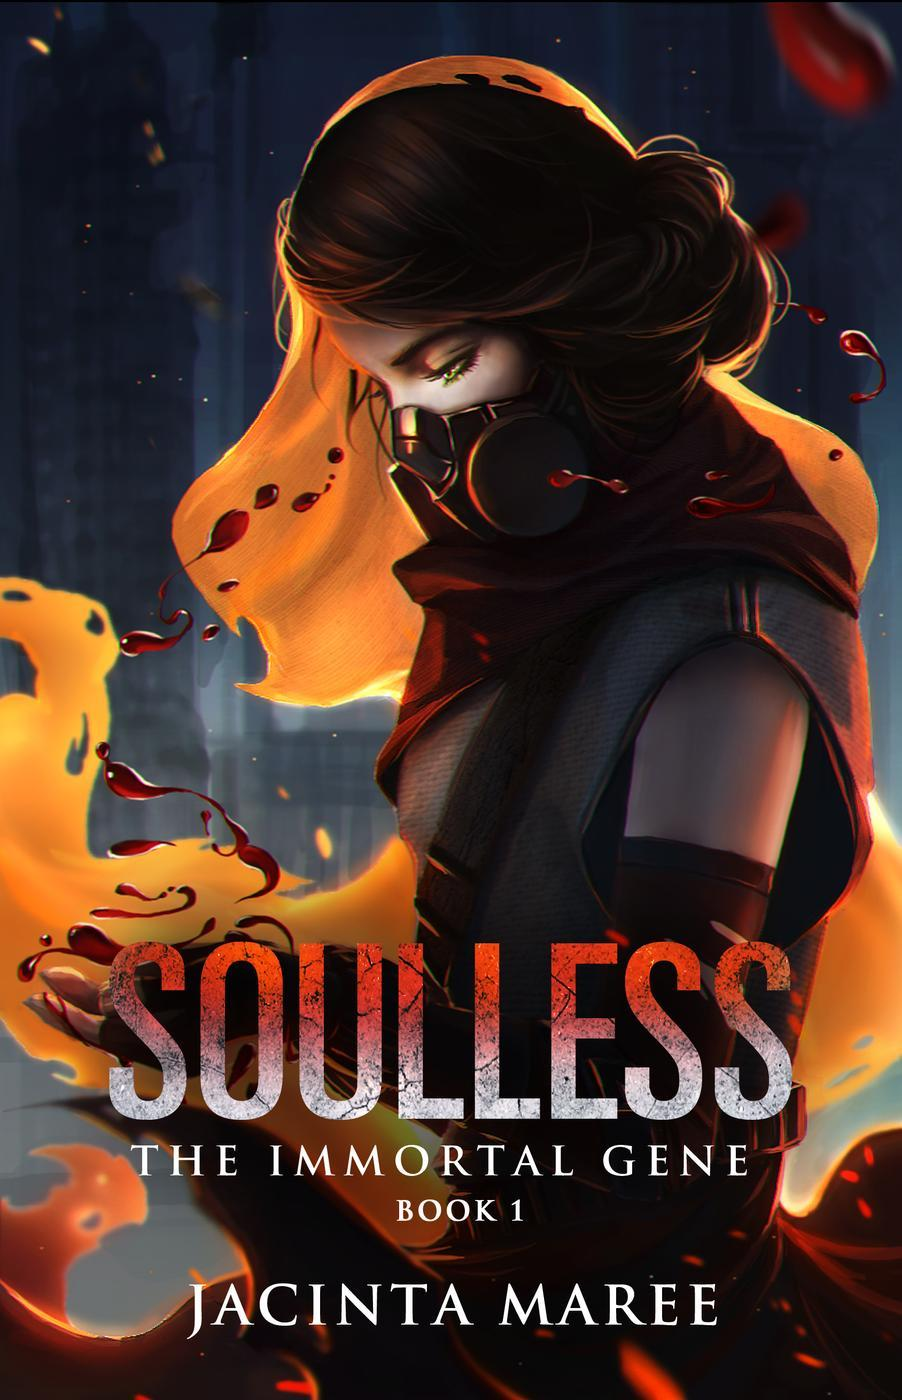 Soulless: The Immortal Gene Trilogy by Jacinta Maree, ISBN: 9780994383907